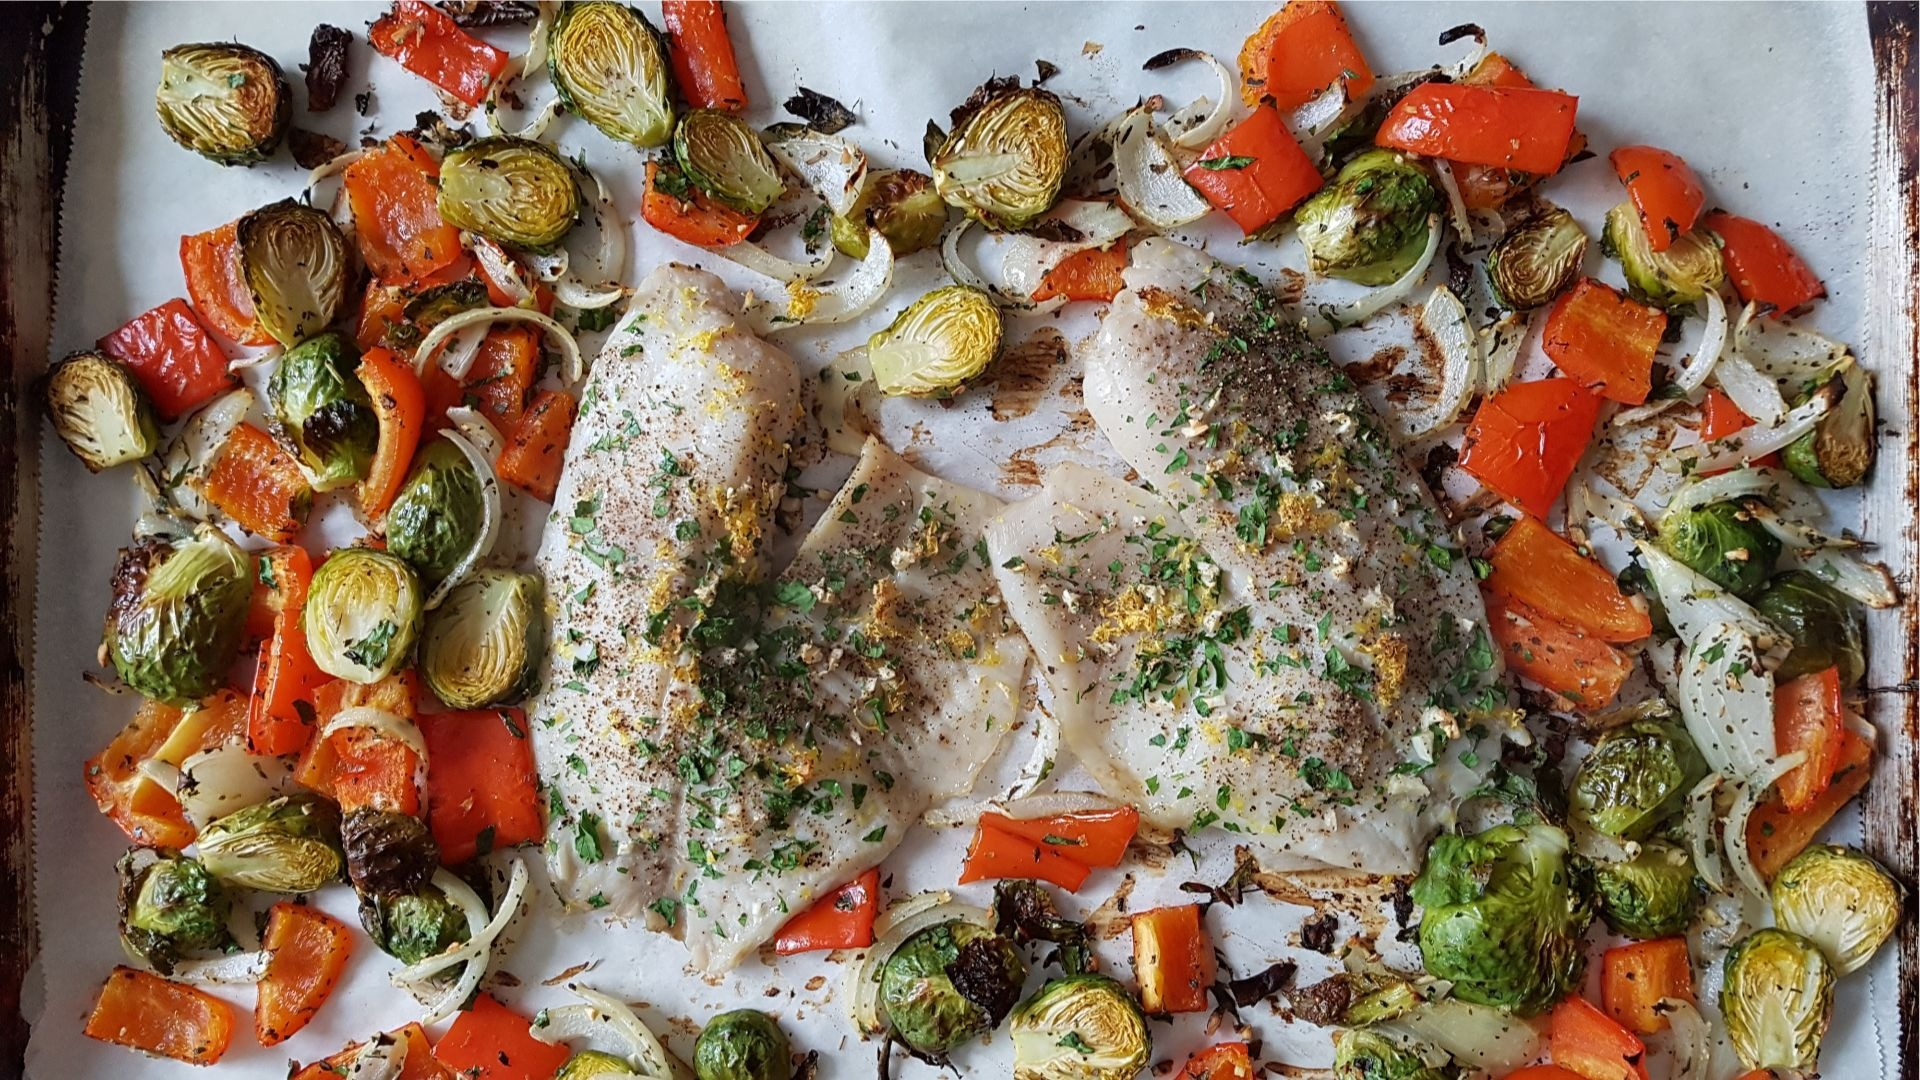 tilapia fillets, brussel sprouts, red peppers on parchment paper